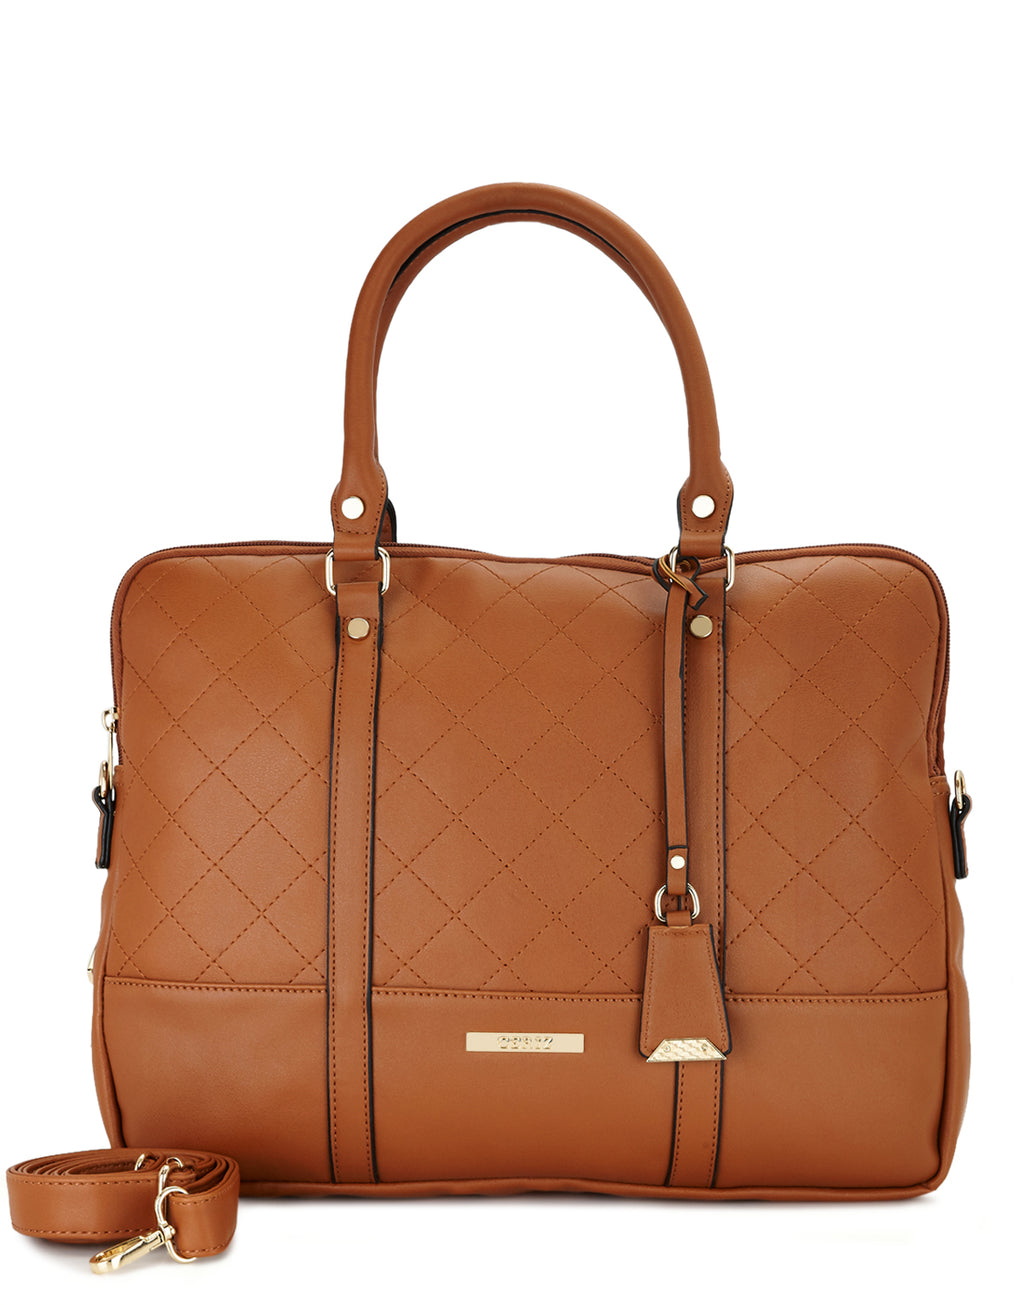 Adaliz Tan Laptop Bag